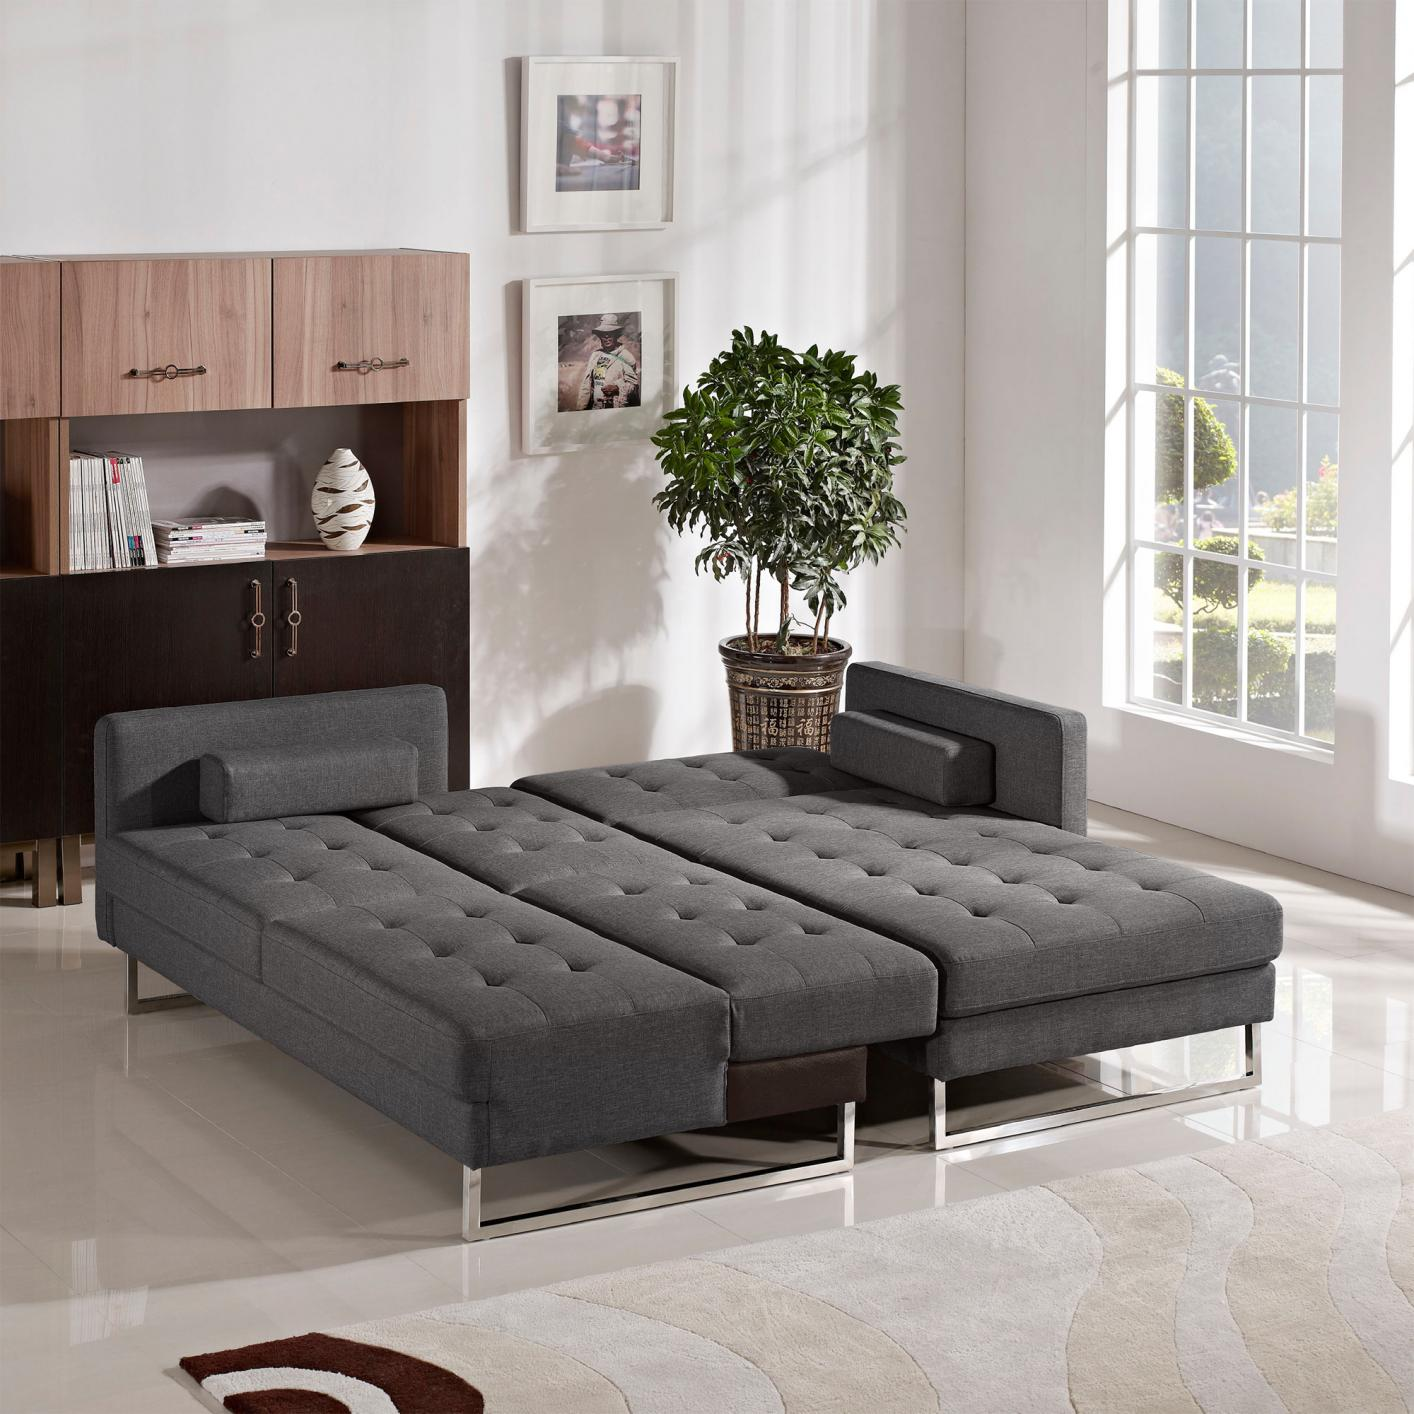 Opus Grey Fabric Sectional Sofa Bed Steal A Sofa Furniture